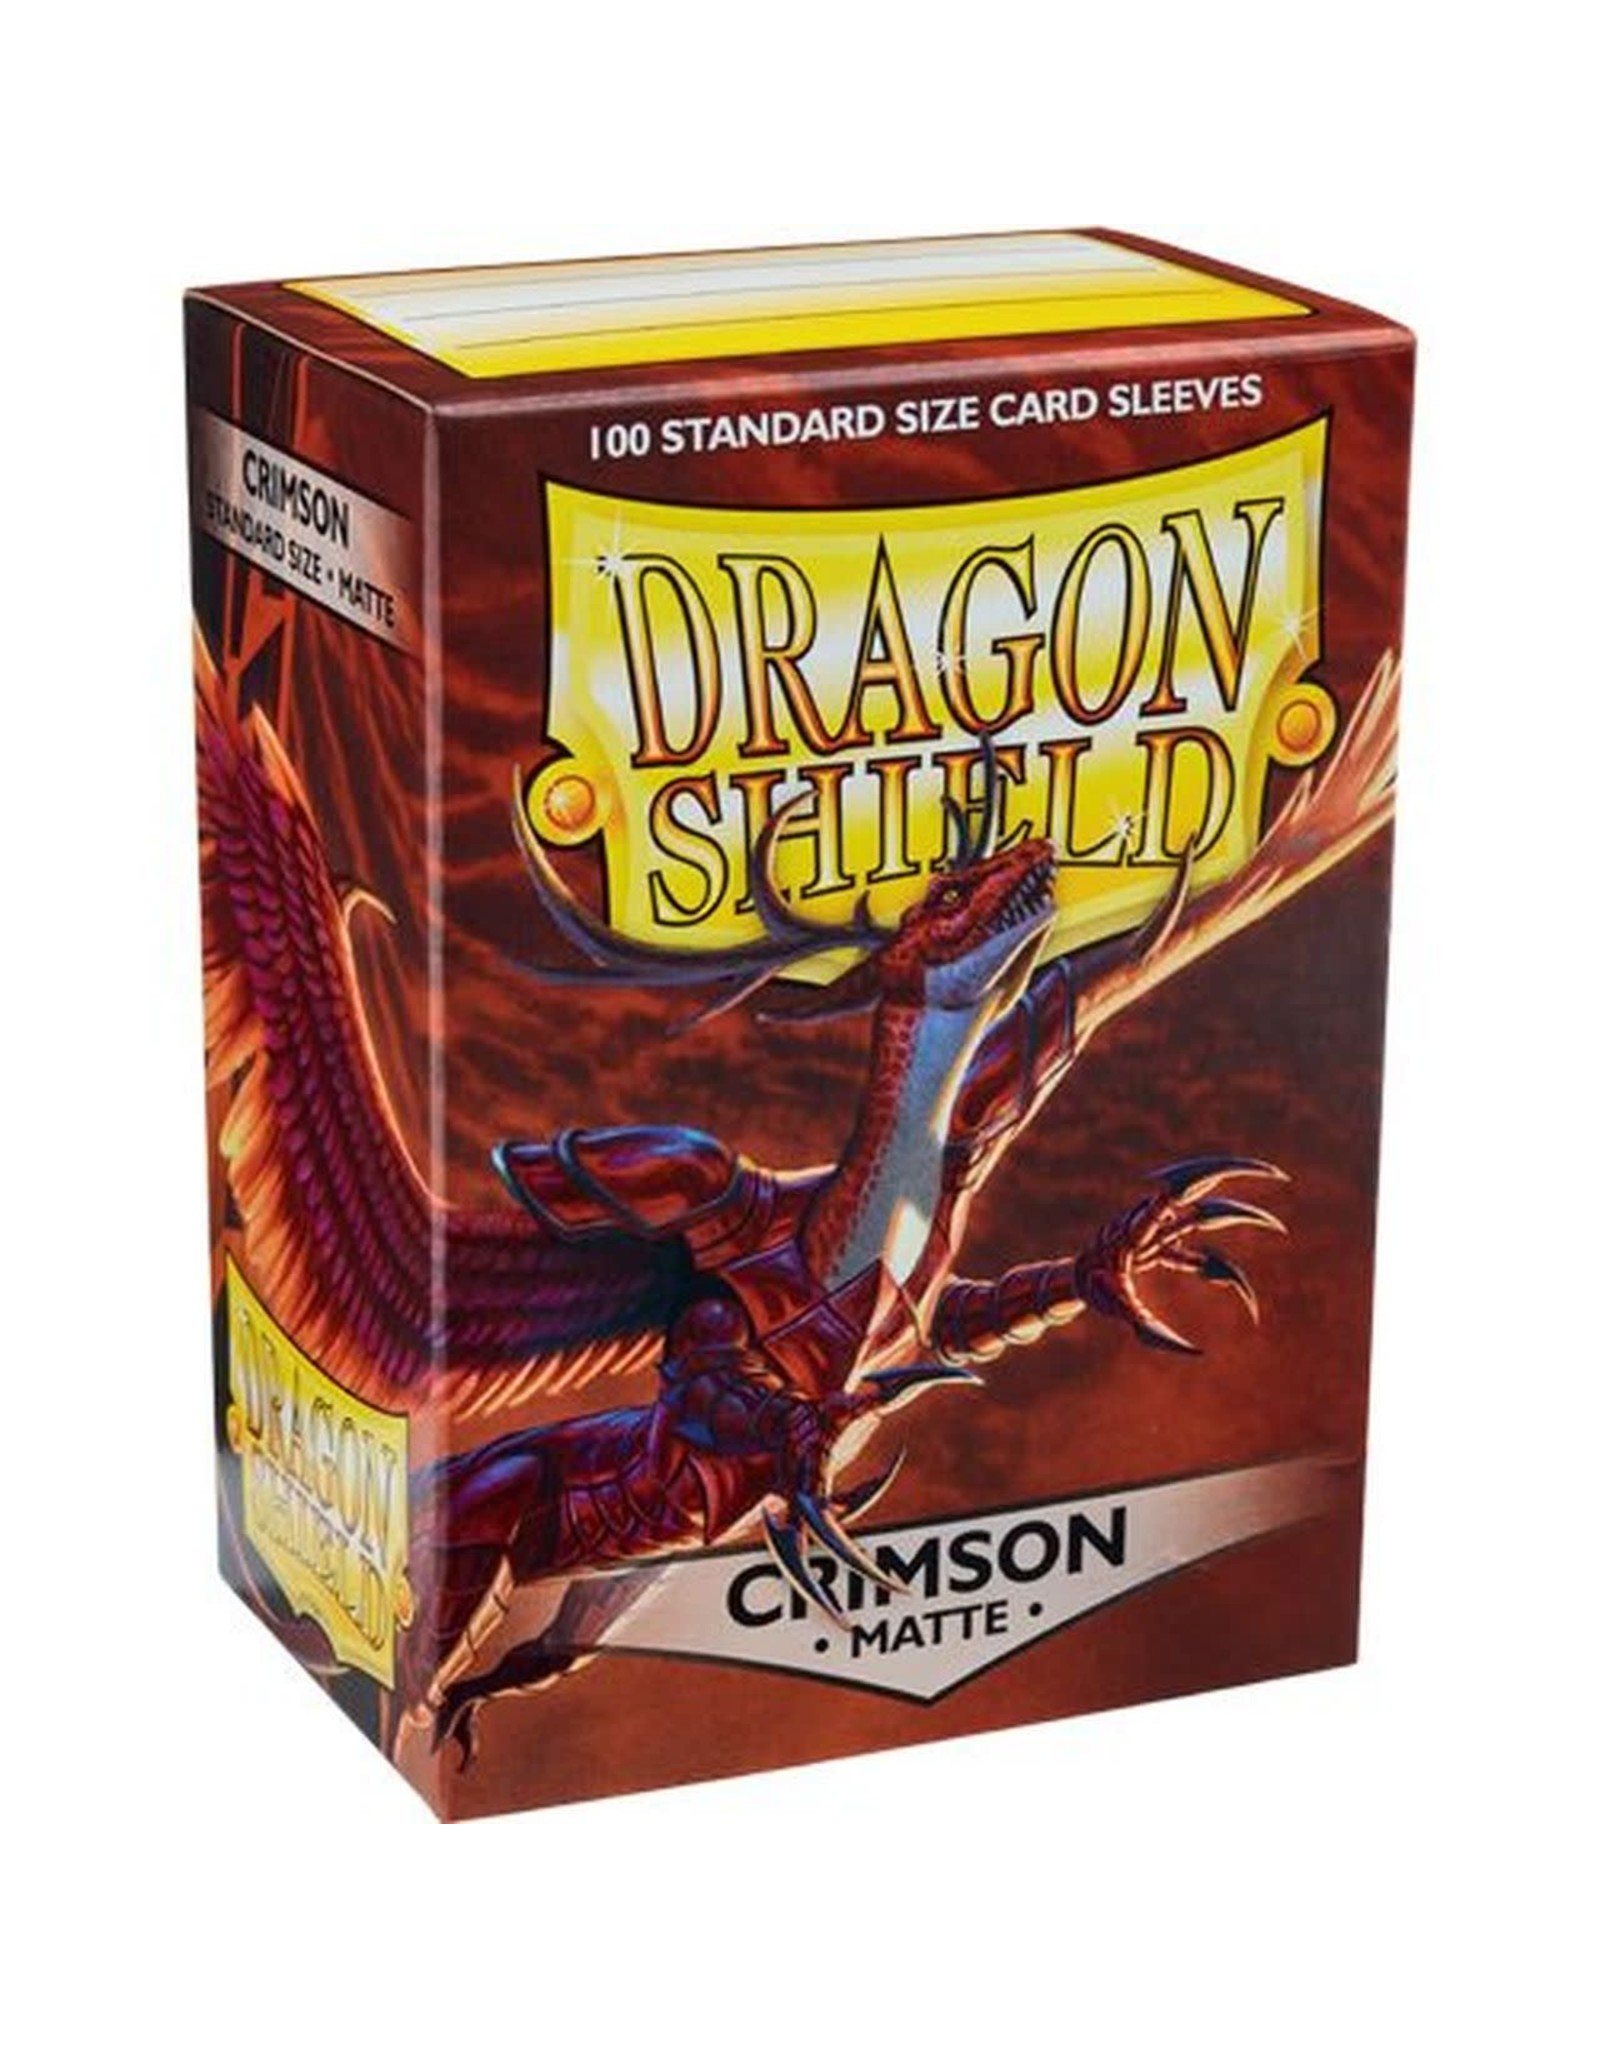 Dragon Shield Dragon Shield Matte Crimson 100ct